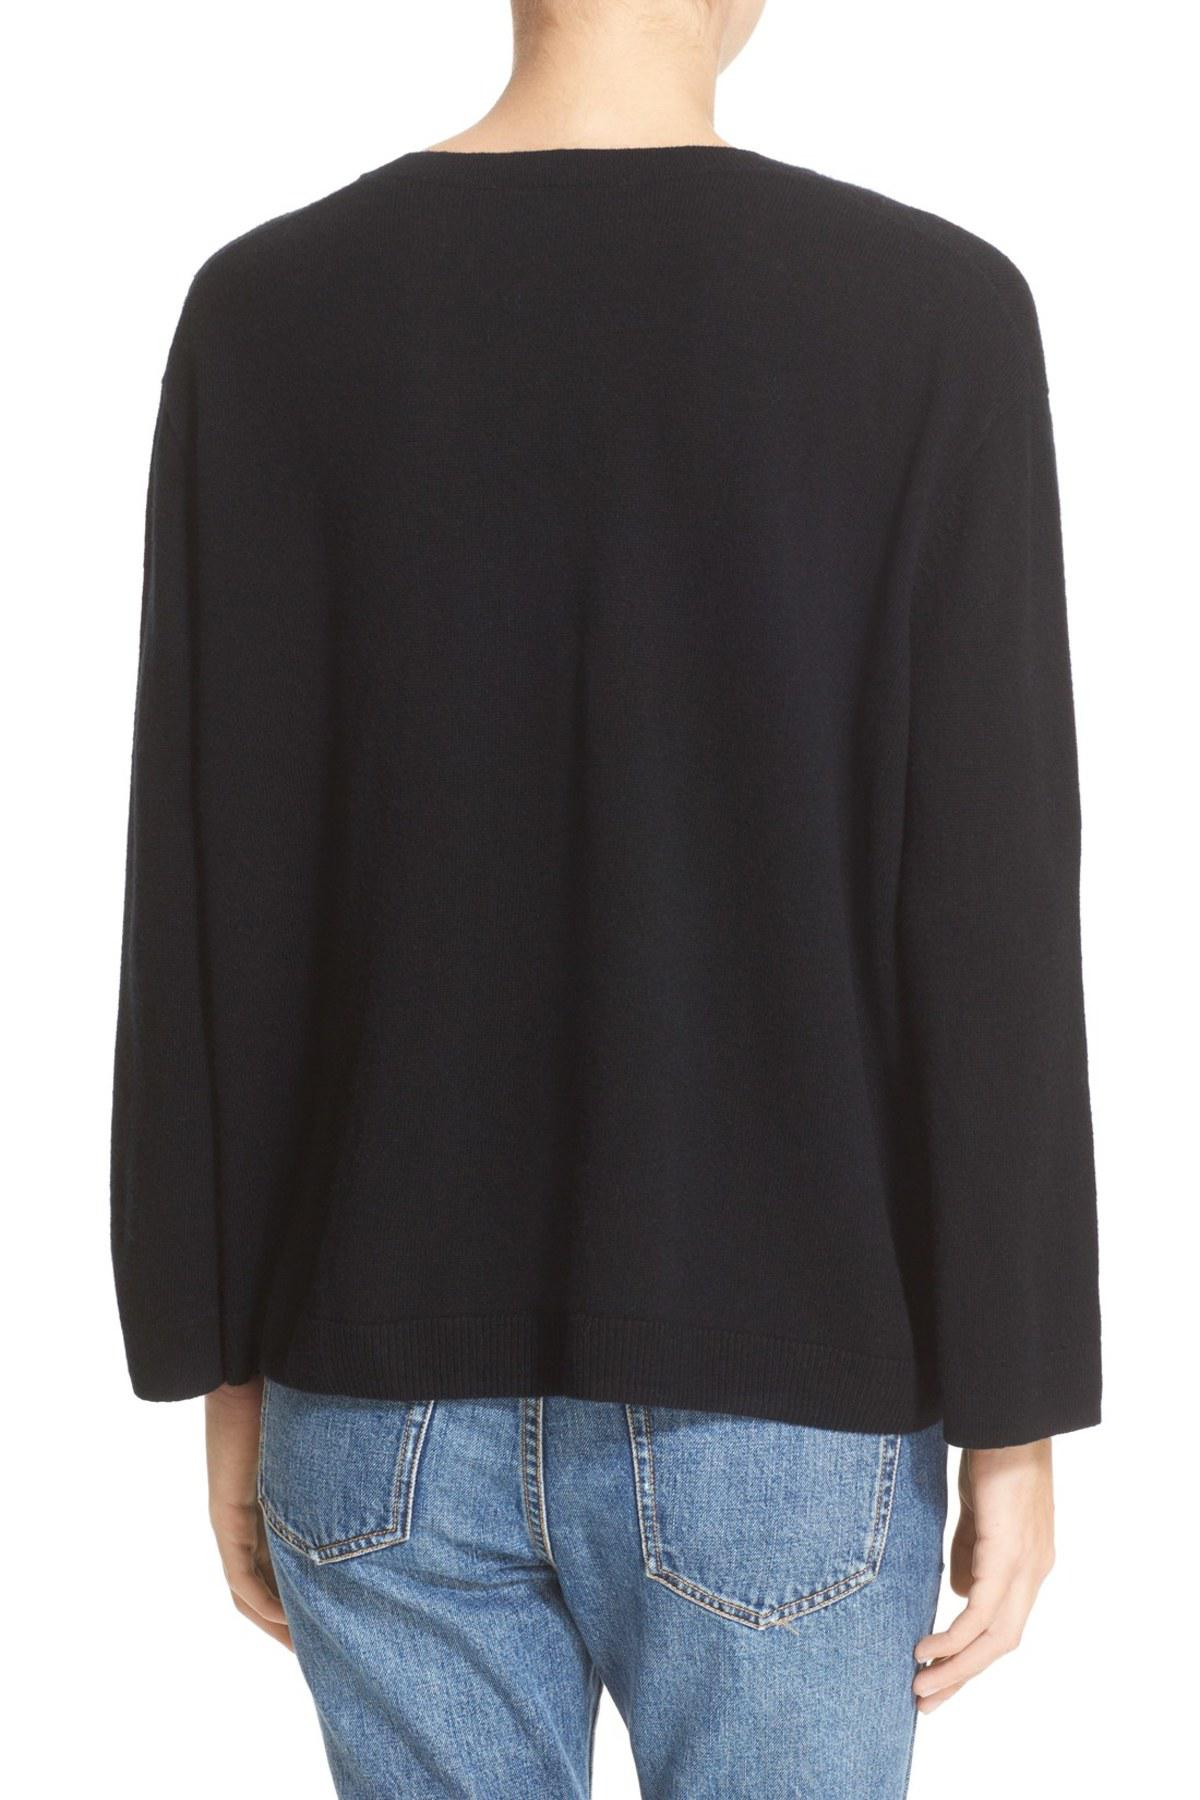 6d72feaacd Lyst - The Kooples Lace-up Wool   Cashmere Sweater in Black